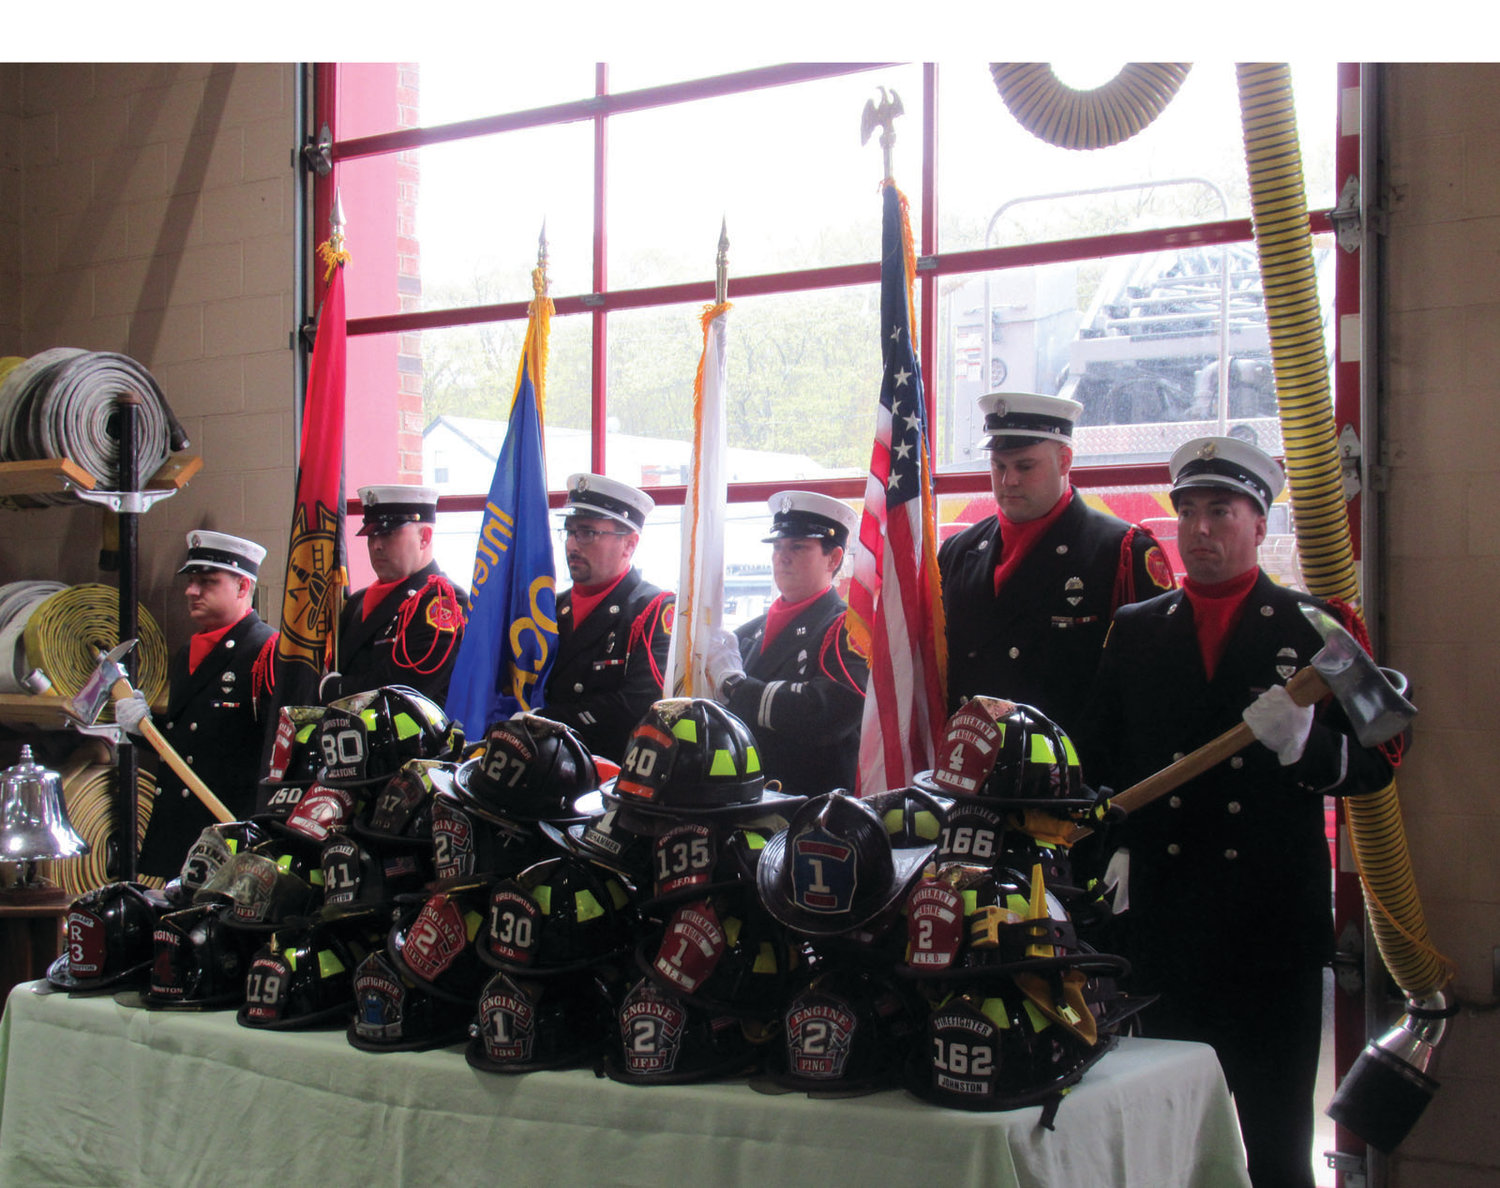 GRAND GUARD: The Johnston Fire Honor Guard stands behind the helmets of all current firefighters as the Rev. Ryan J. Simas, the department's chaplain, performs the Blessing of Helmets during Sunday's memorial ceremony.